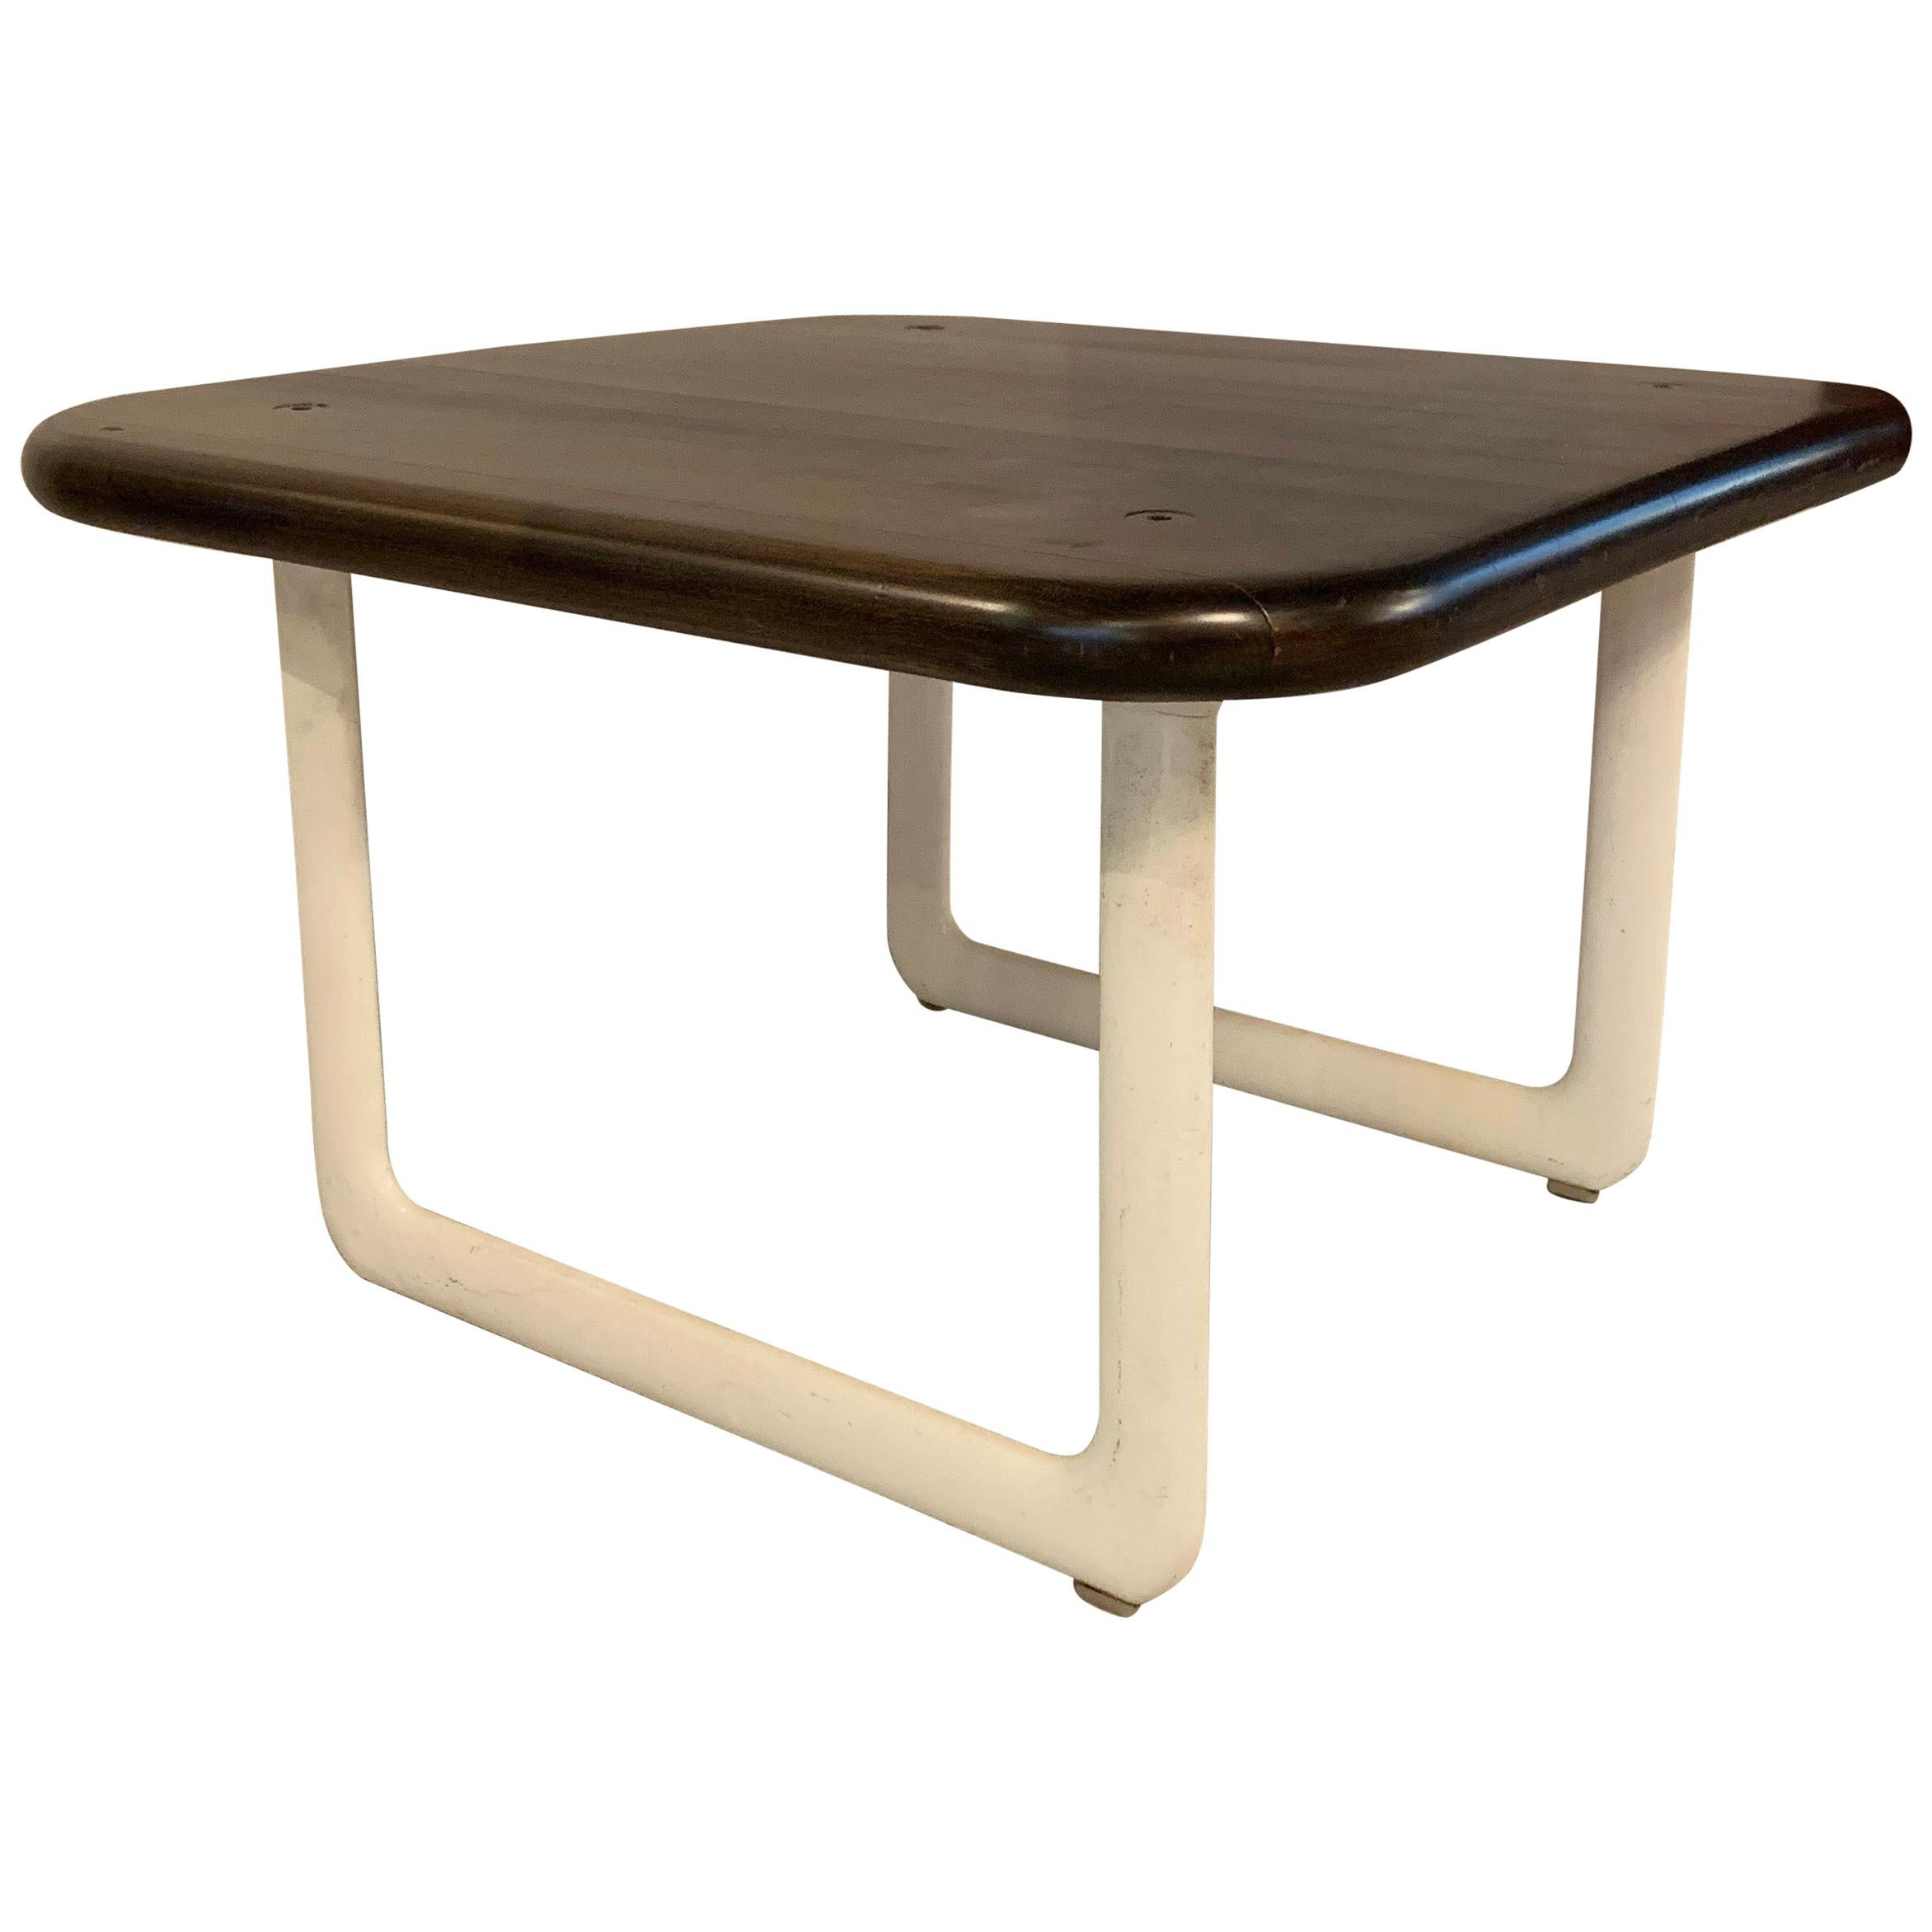 Mid-Century Modern Coffee Table by Hannah Morrison for Knoll